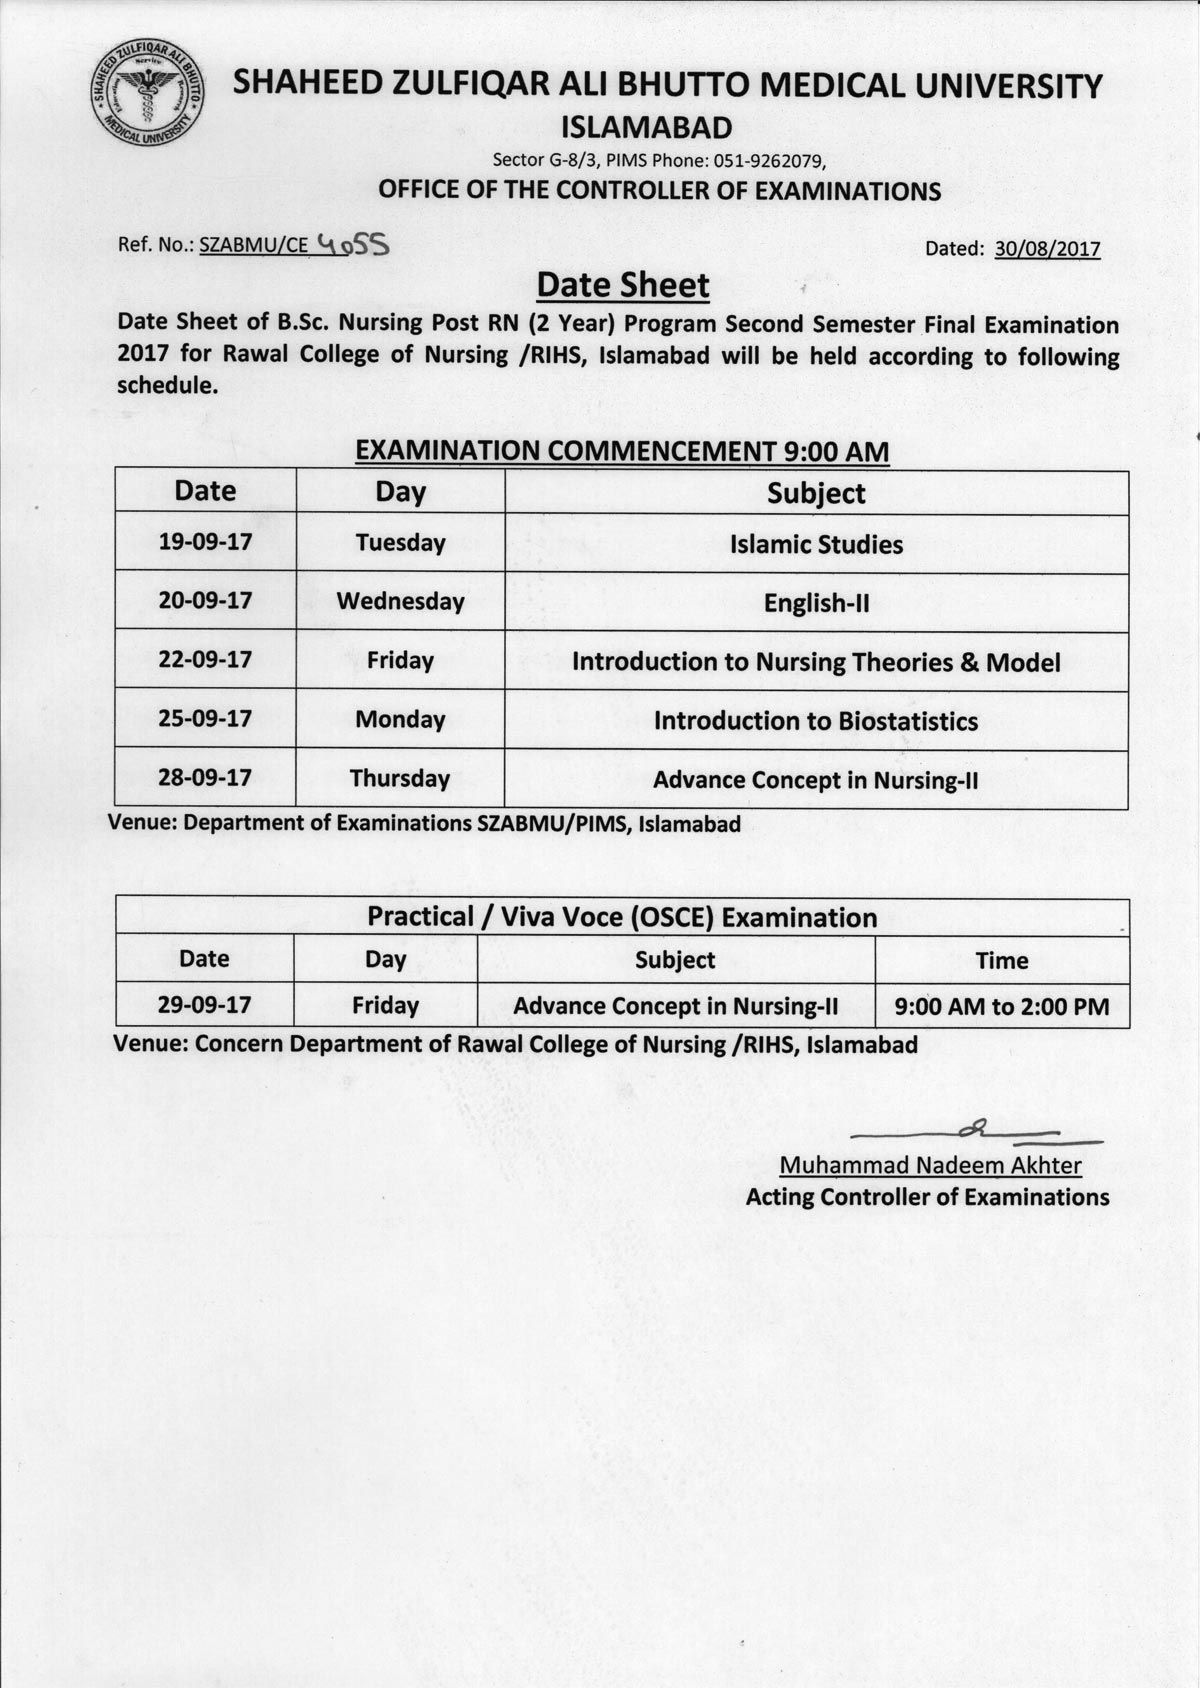 Date sheet - B.Sc. Nursing Post RN 2nd Semester Final Exams 2017